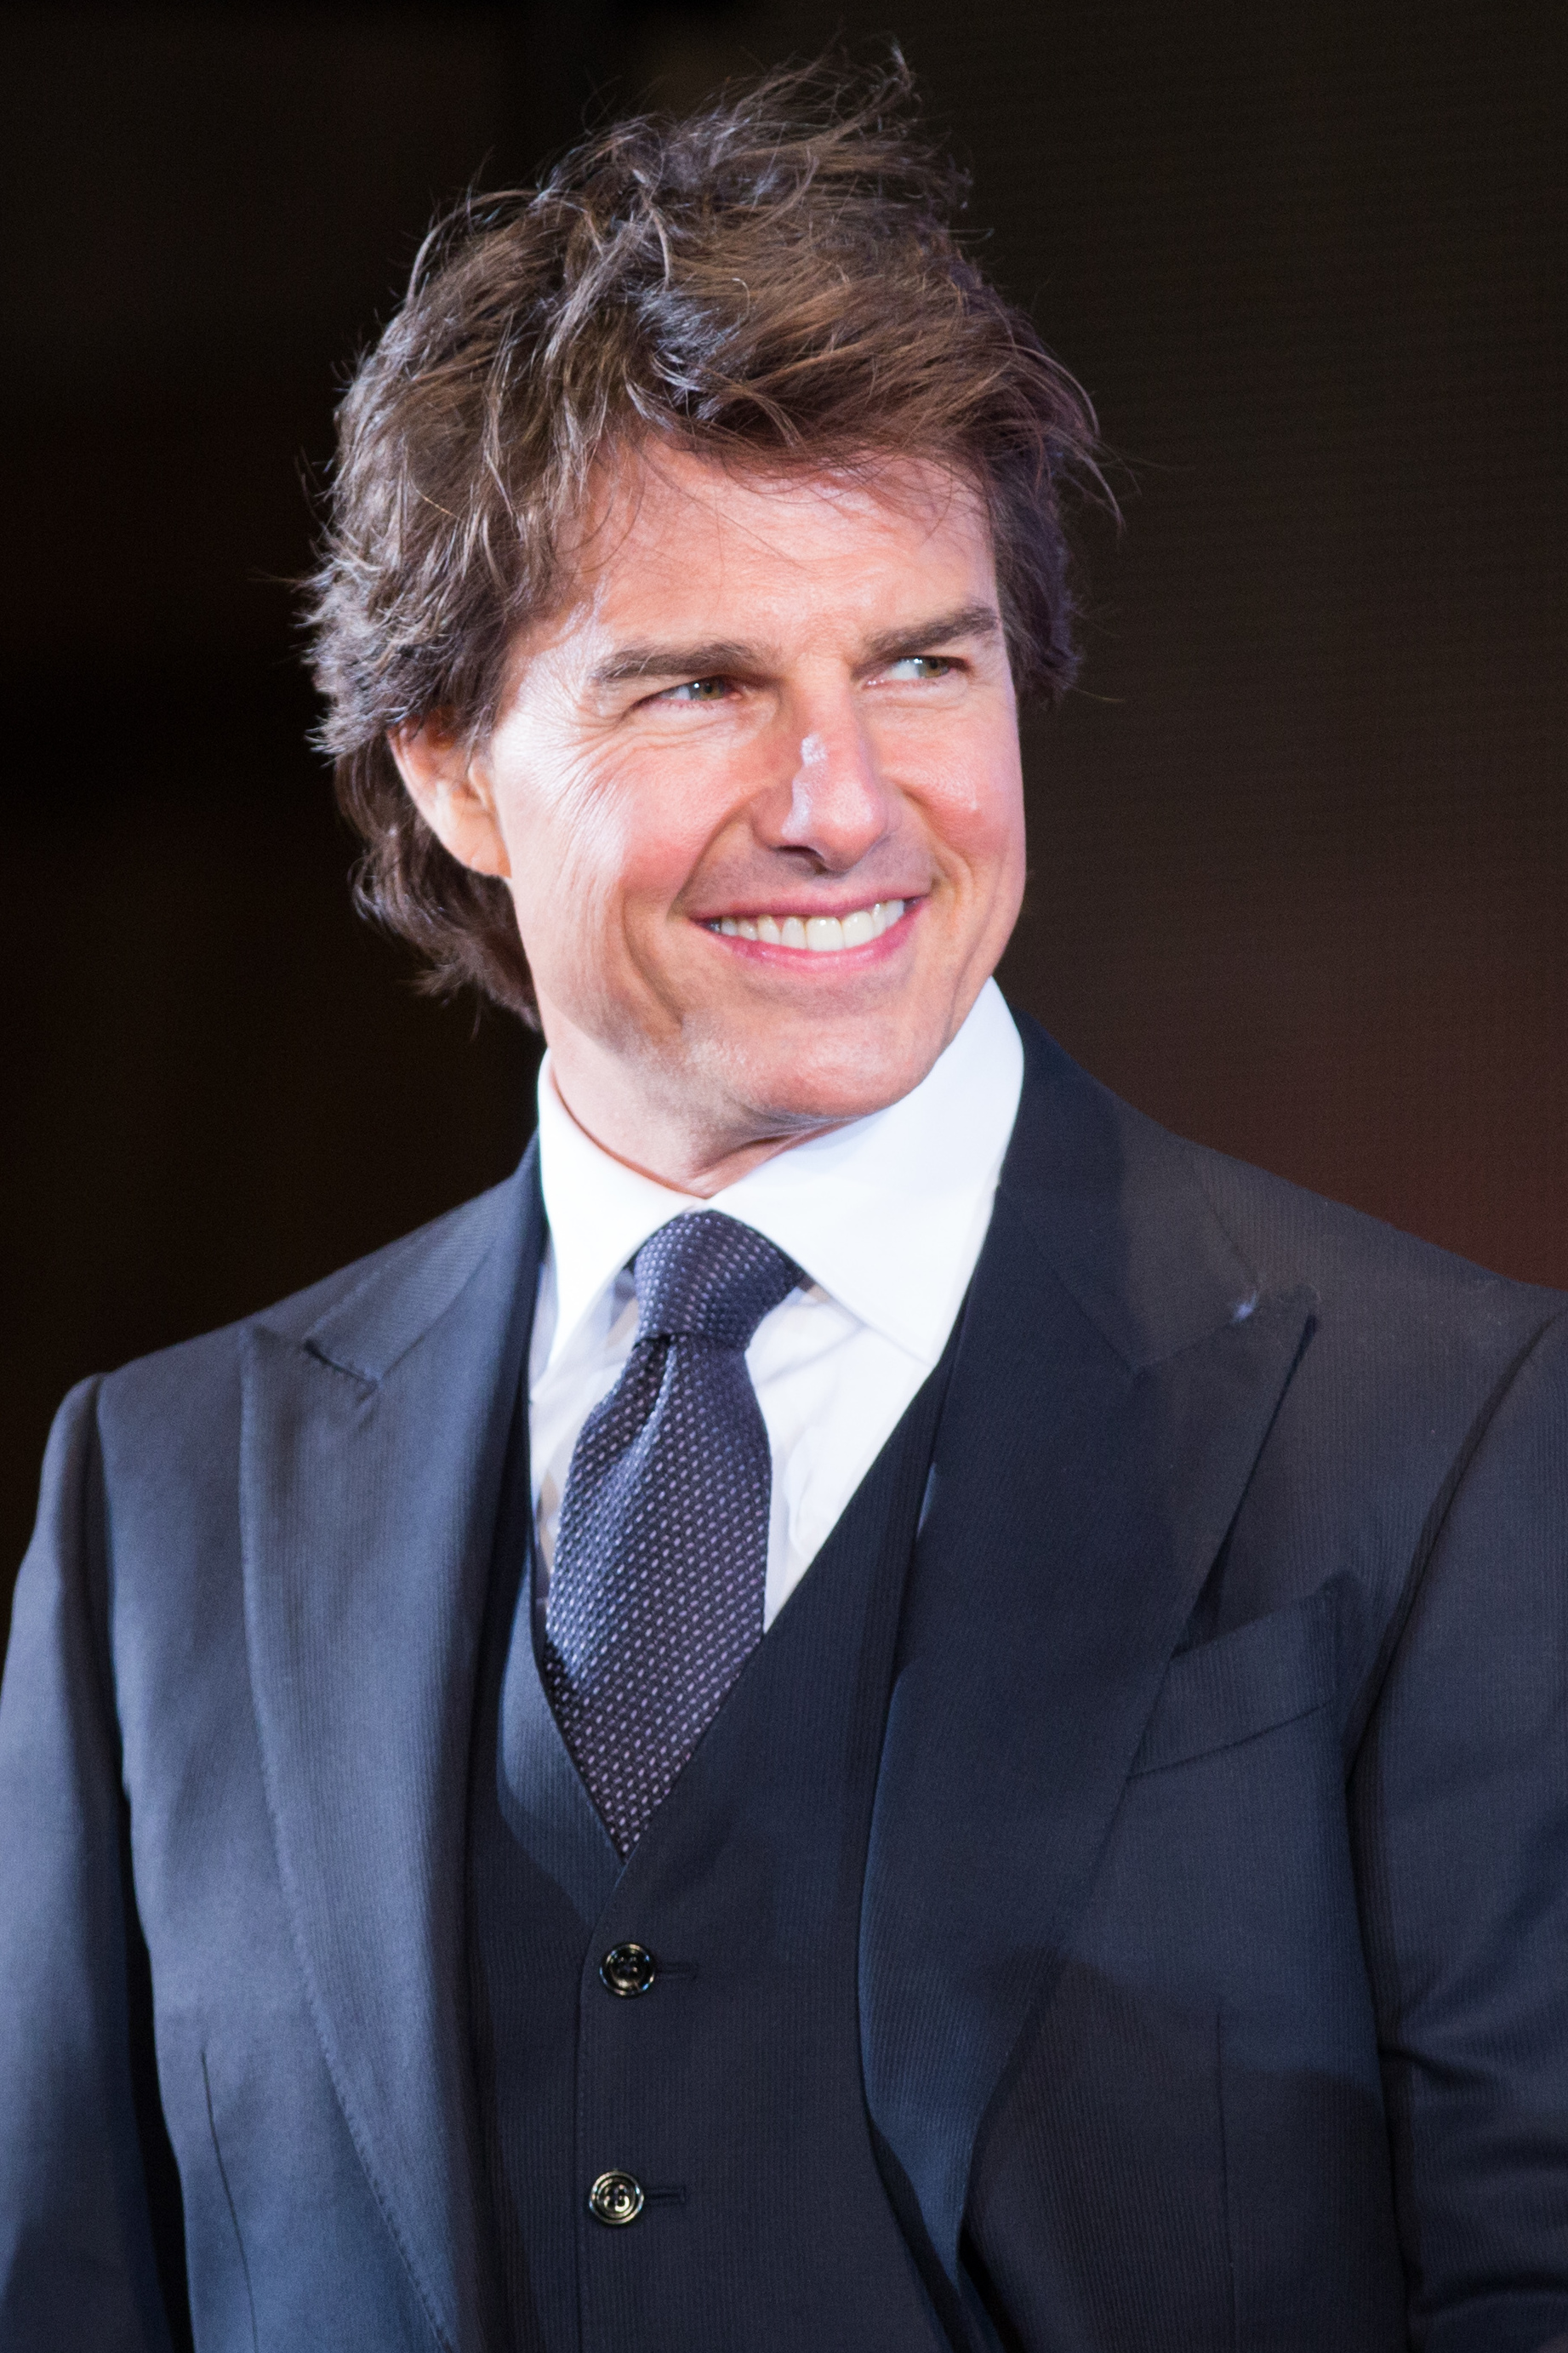 File:Jack Reacher- Never Go Back Japan Premiere Red Carpet- Tom Cruise  (35338493152) (cropped).jpg - Wikimedia Commons